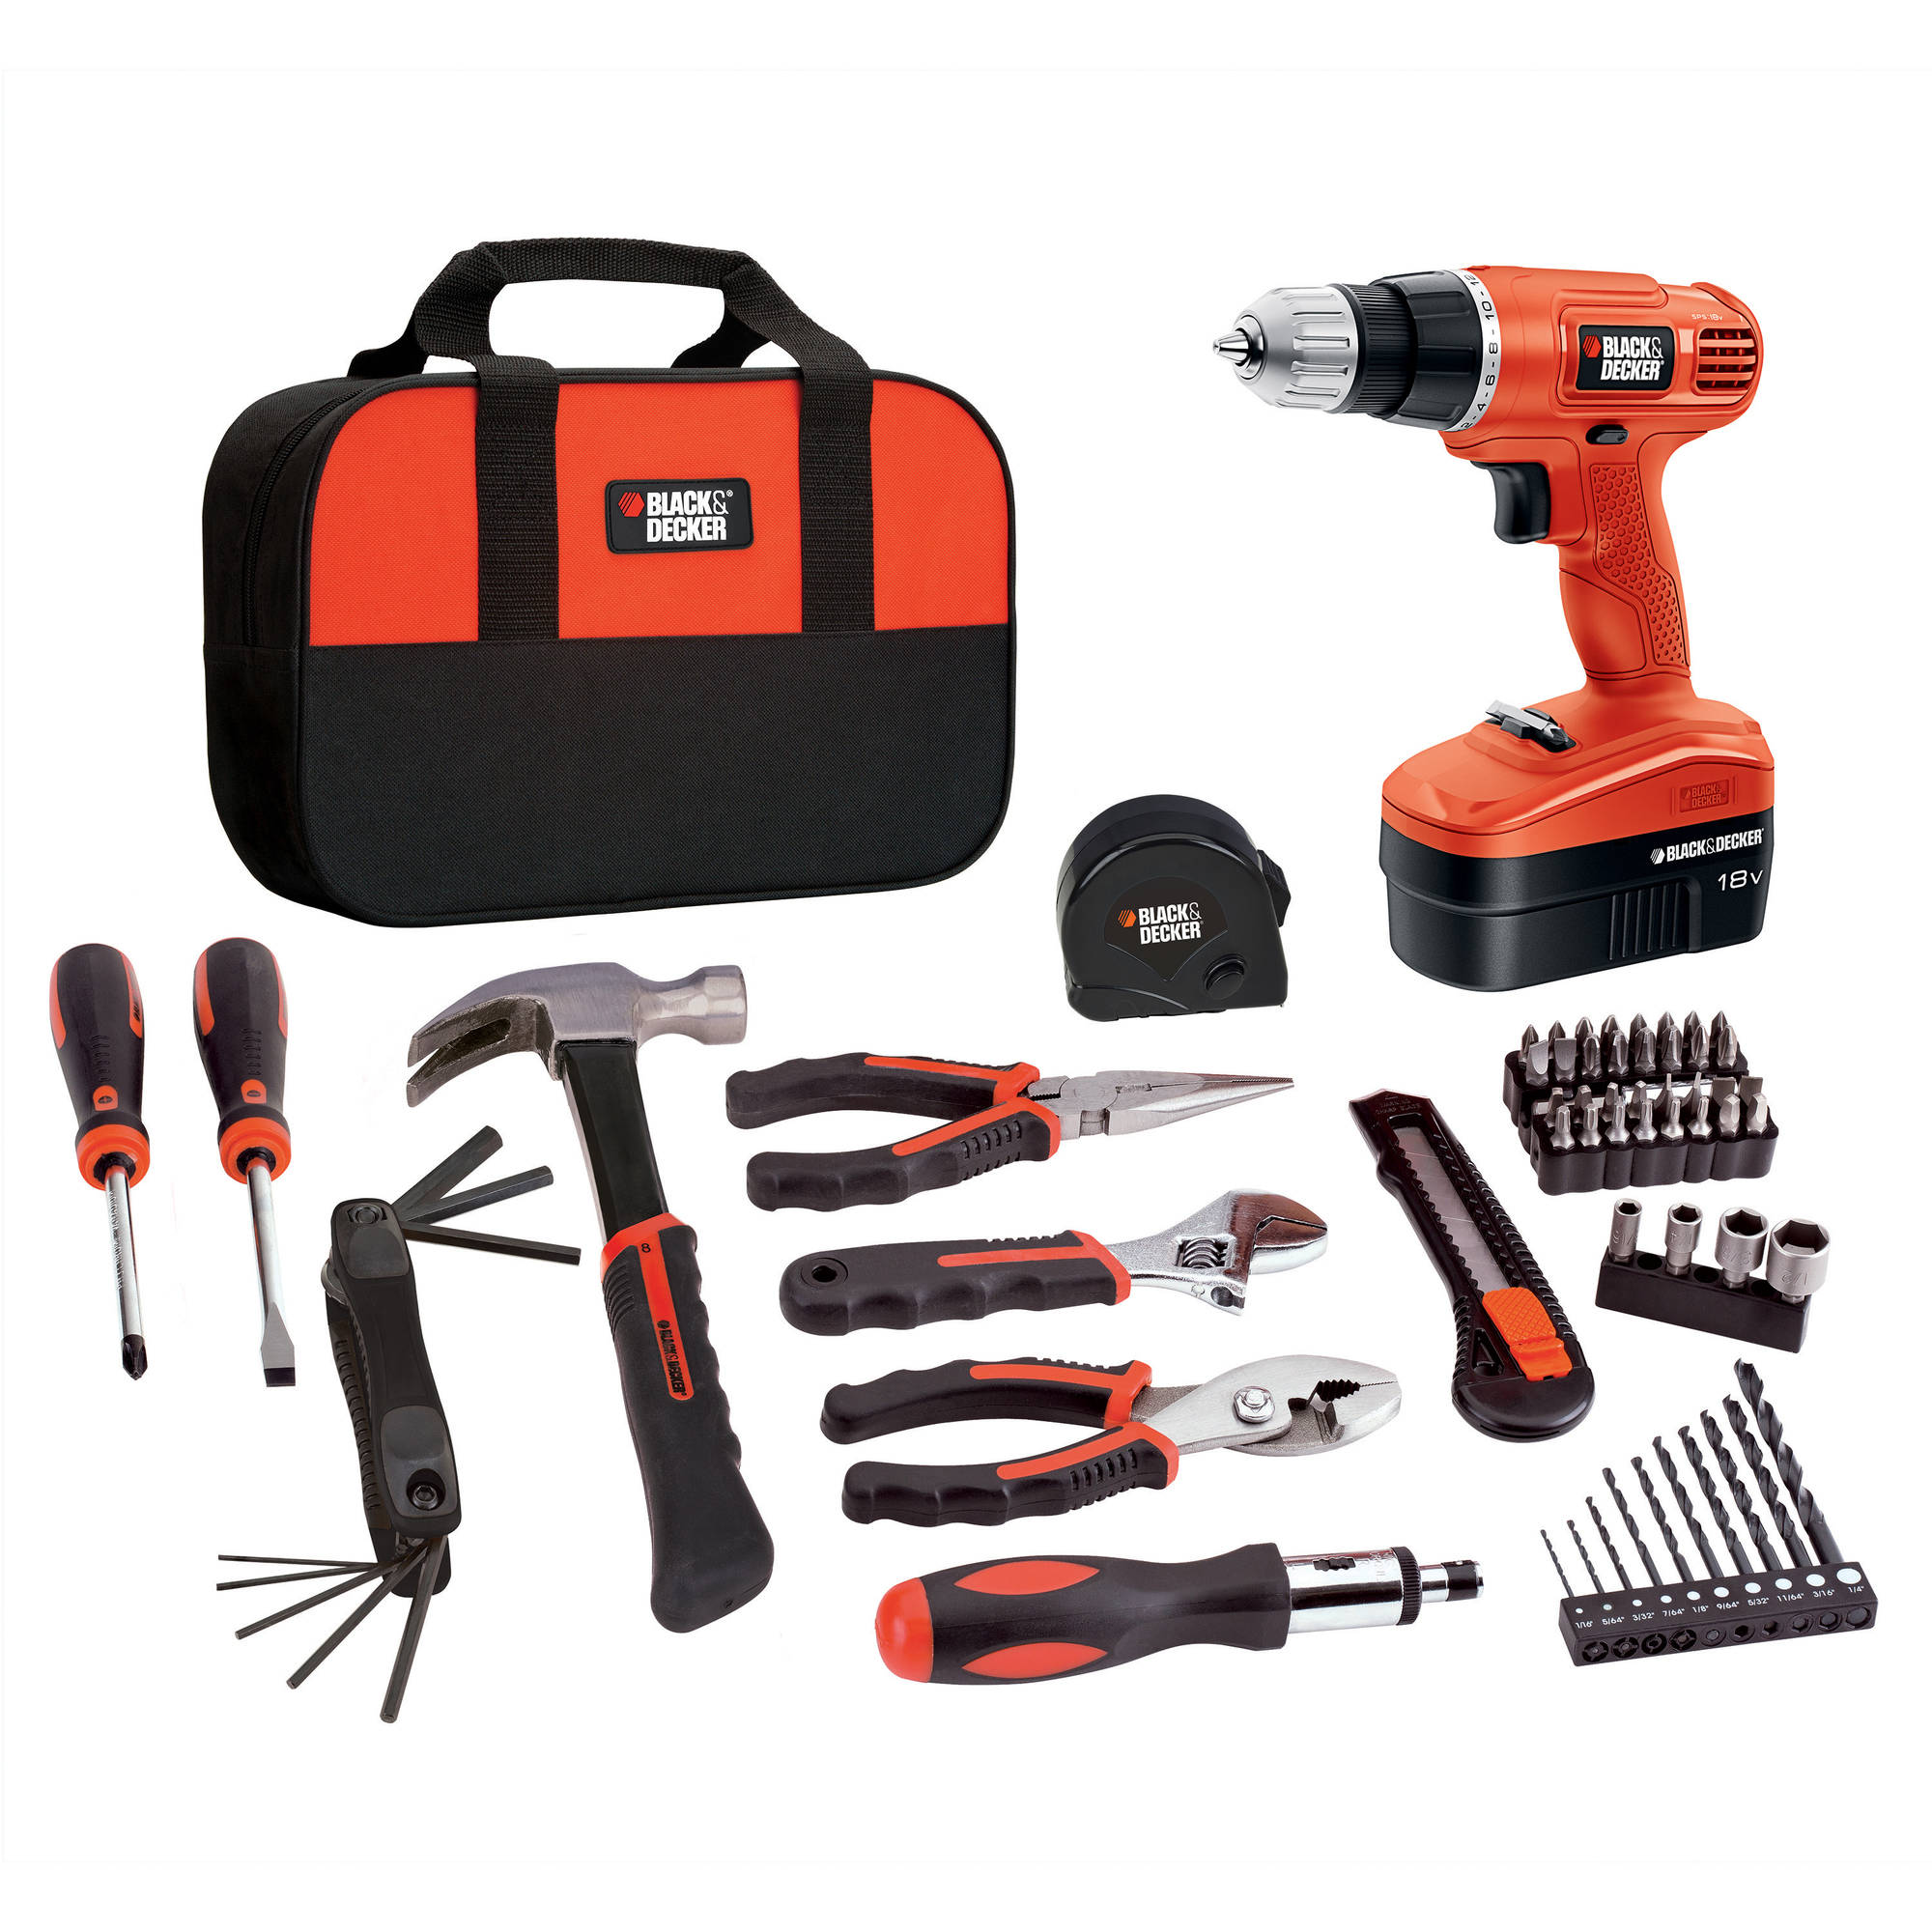 Black Decker 18v Cordless Nicad Drill Driver With 64 Piece